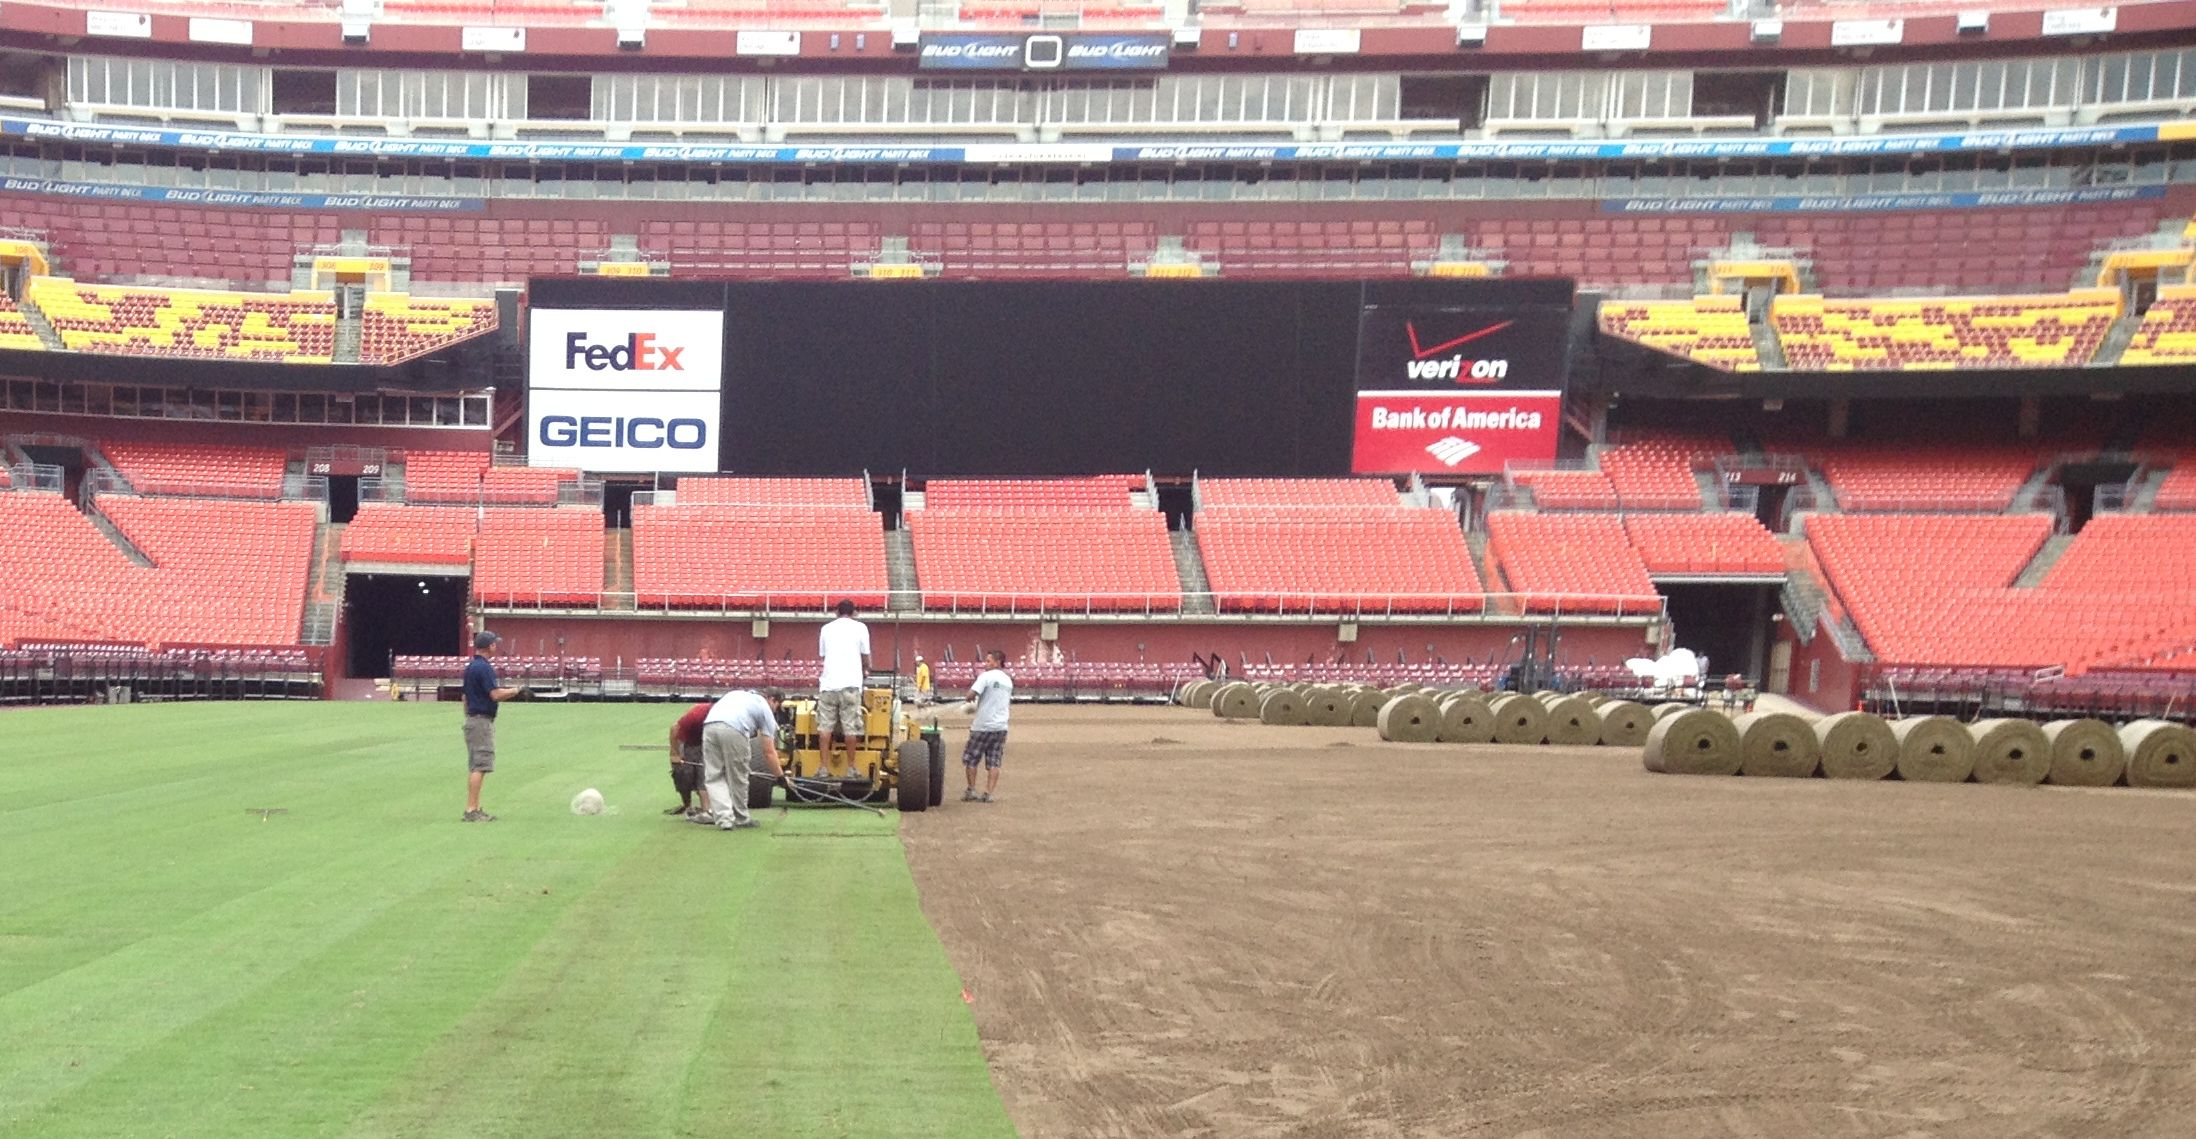 Installing Latitude 36 sod at FedEx Field